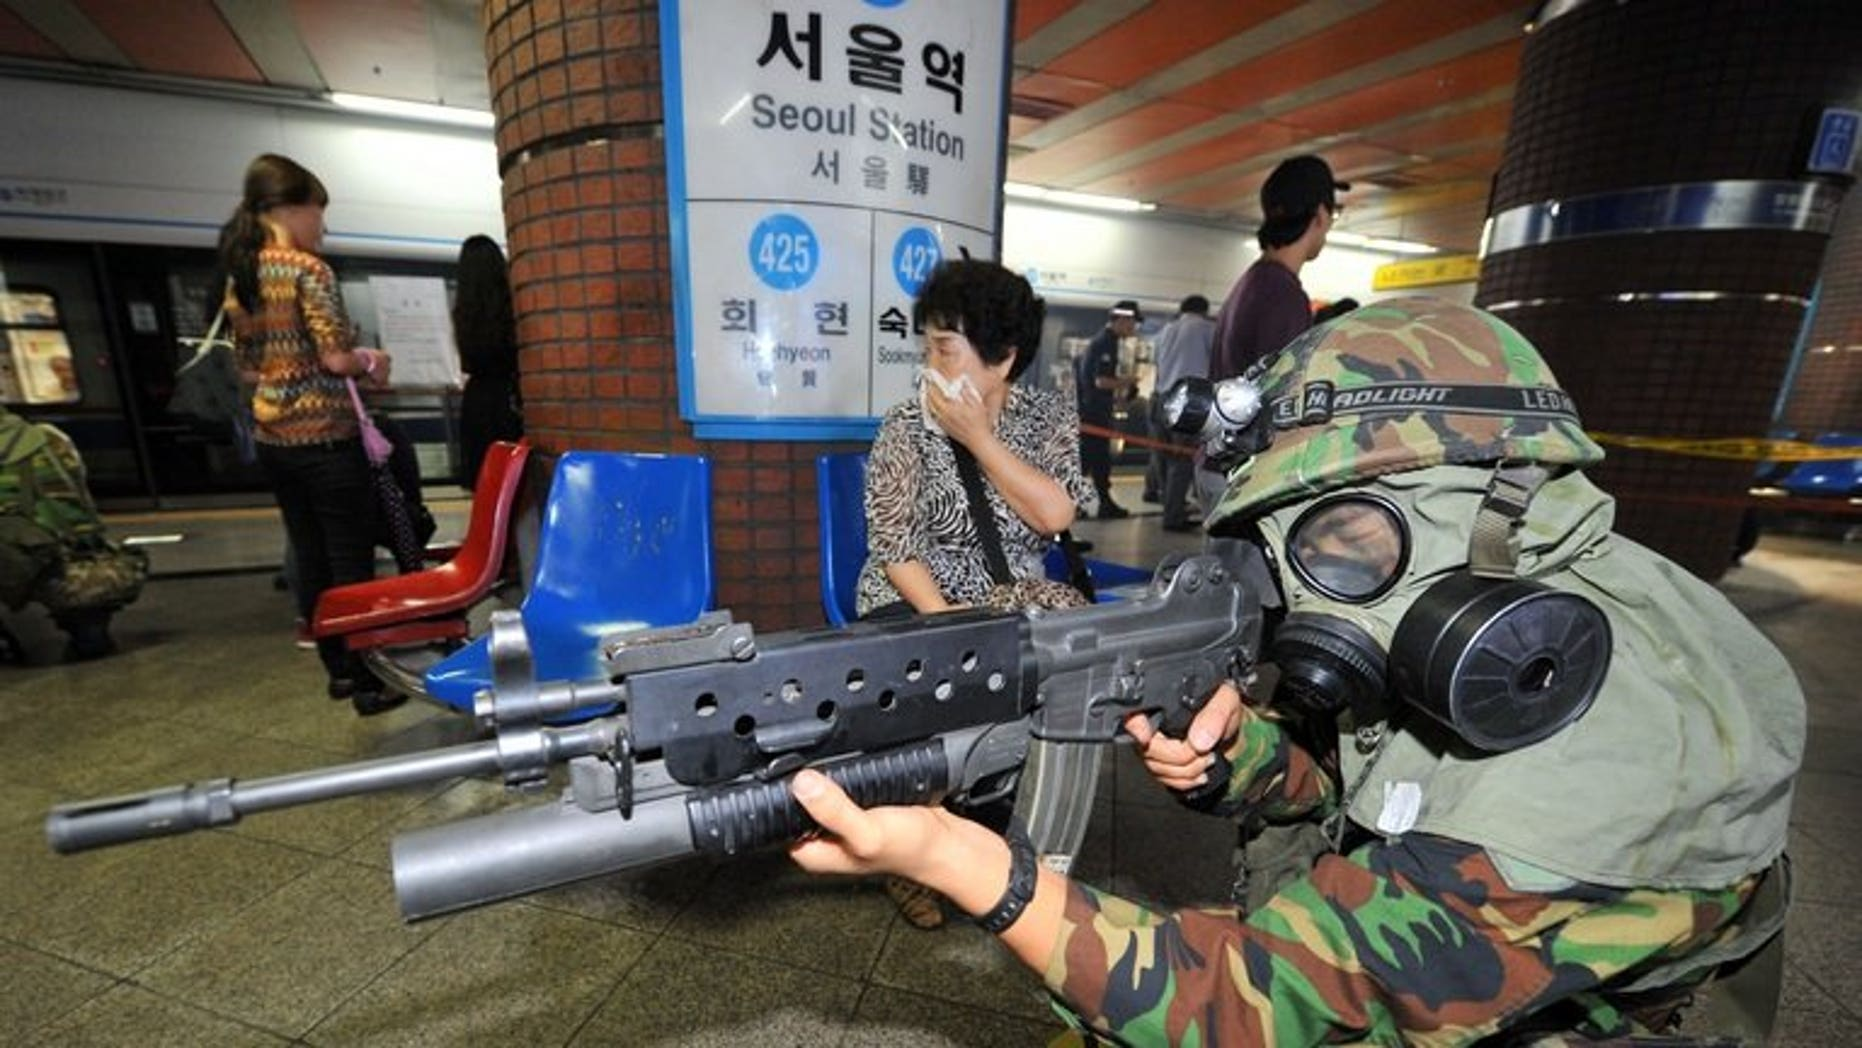 A South Korean soldier during joint military exercises with the US on August 21, 2012. Fresh exercises, known as Ulchi Freedom Guardian drill, involve more than 80,000 South Korean and US troops